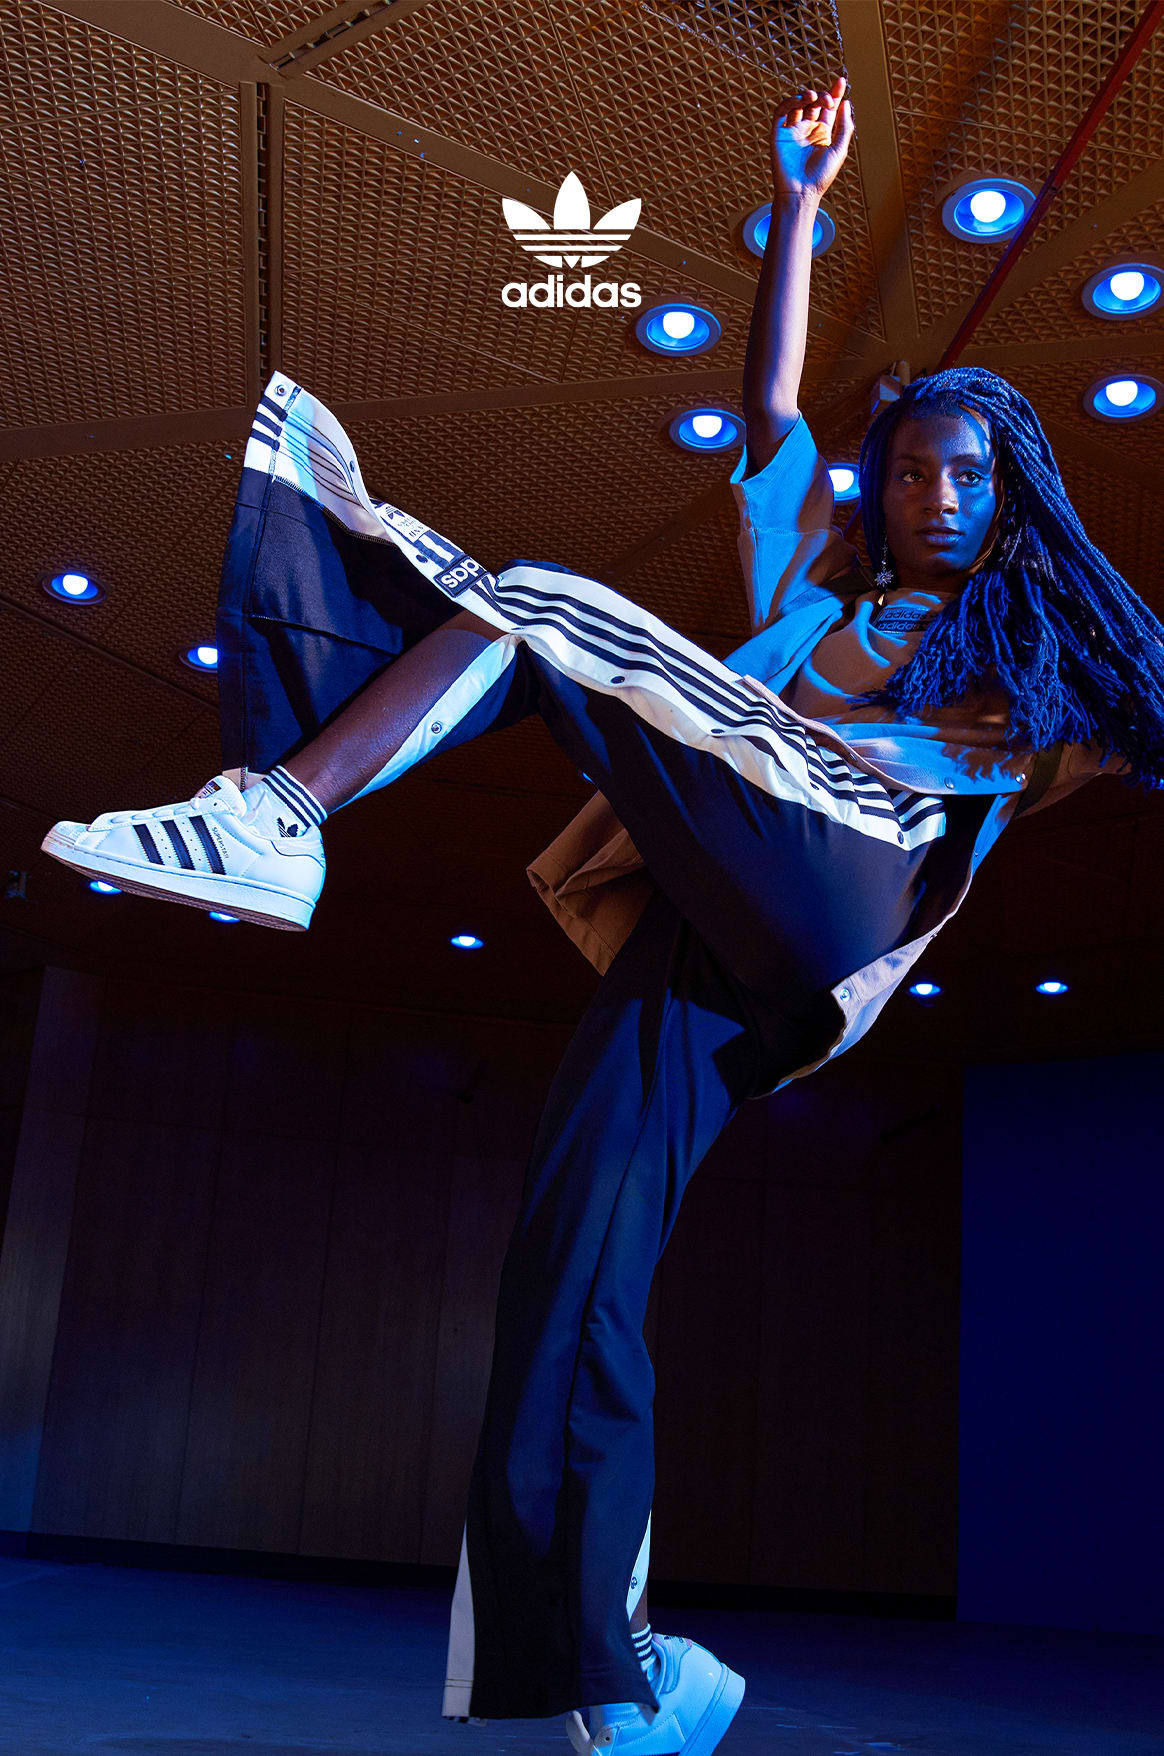 Oumi Janta dancing while wearing the new adidas Originals collection.